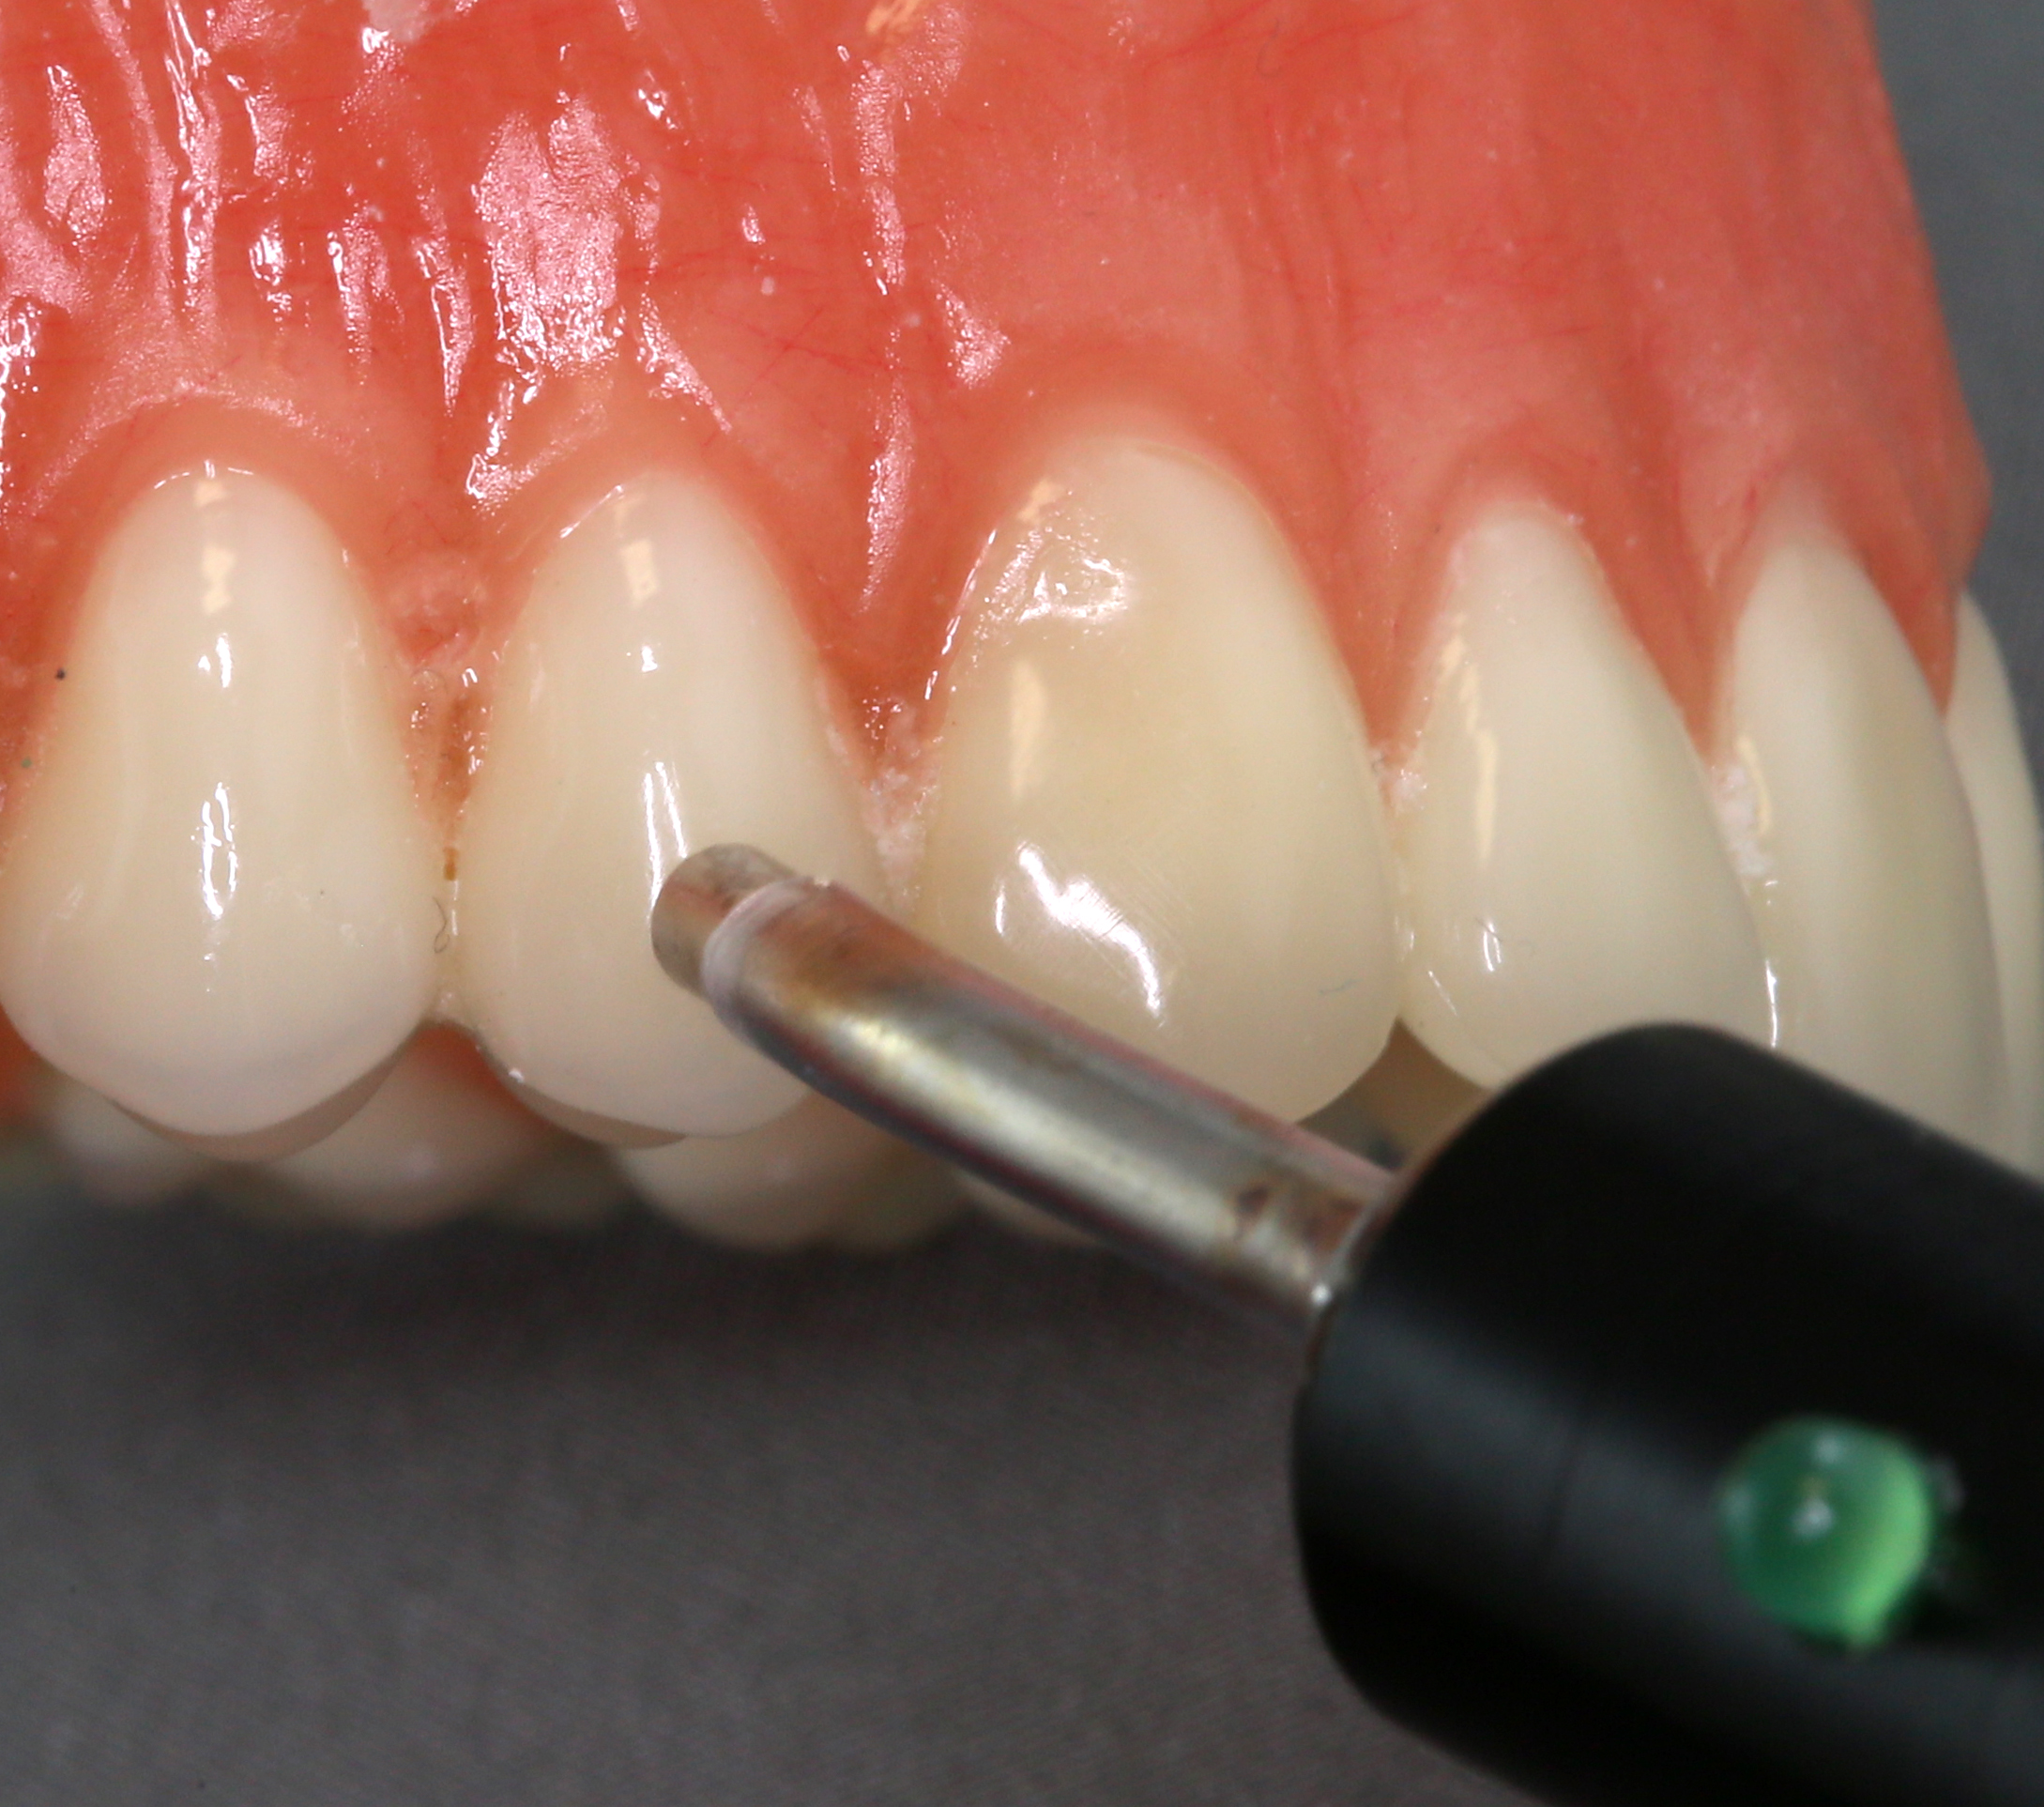 File:Electric pulp testing tooth.jpg - Wikimedia Commons